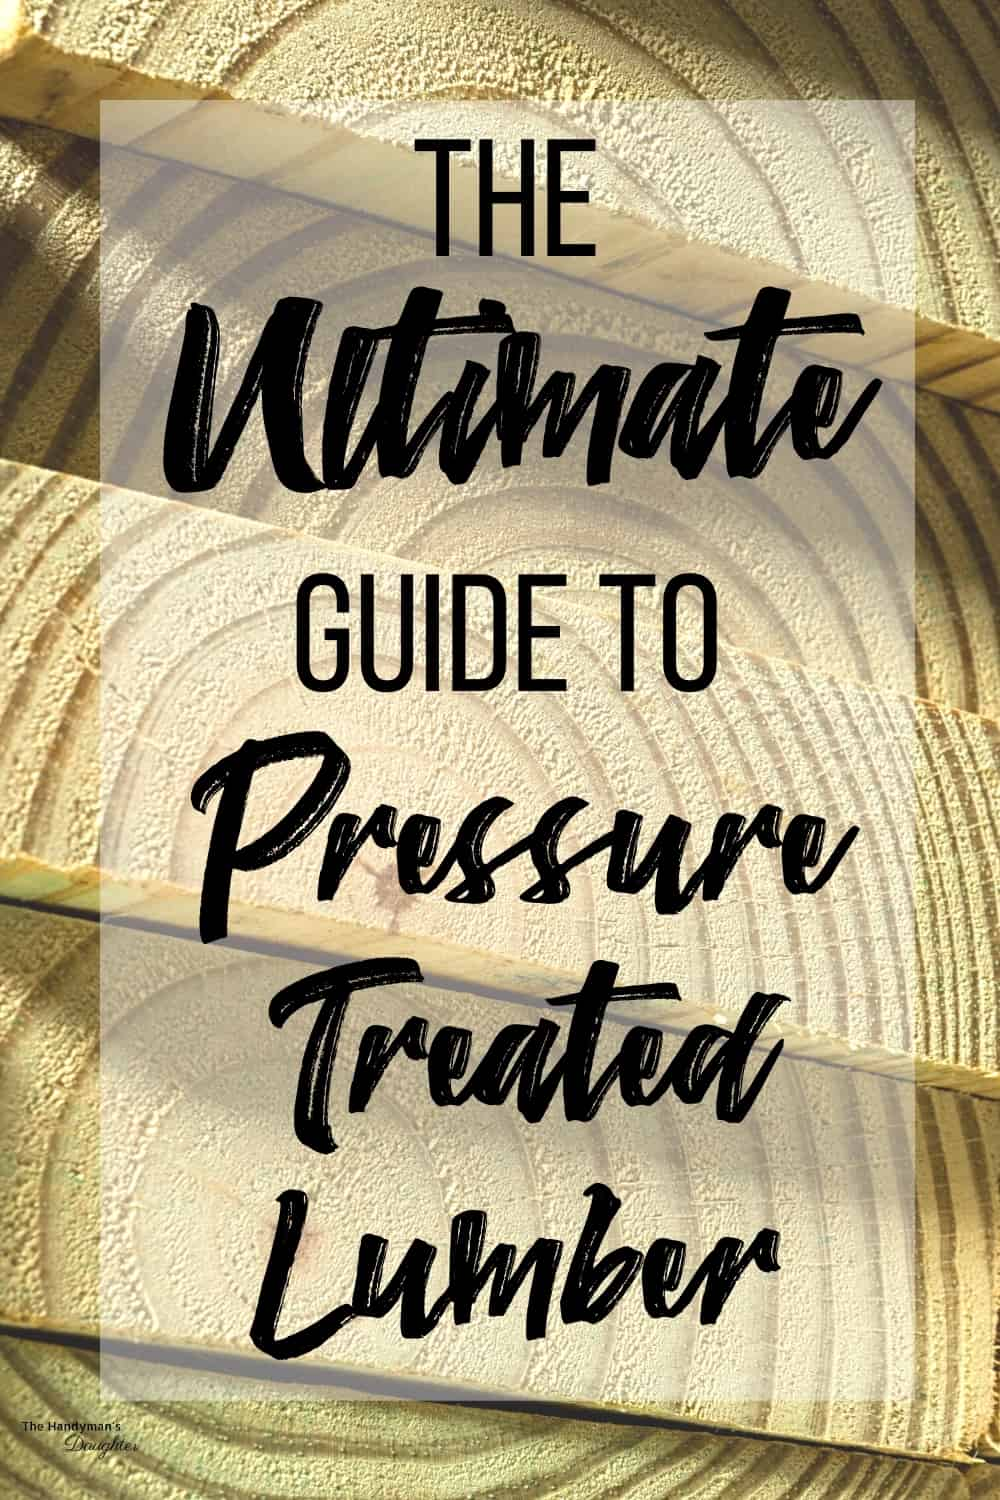 guide to pressure treated lumber